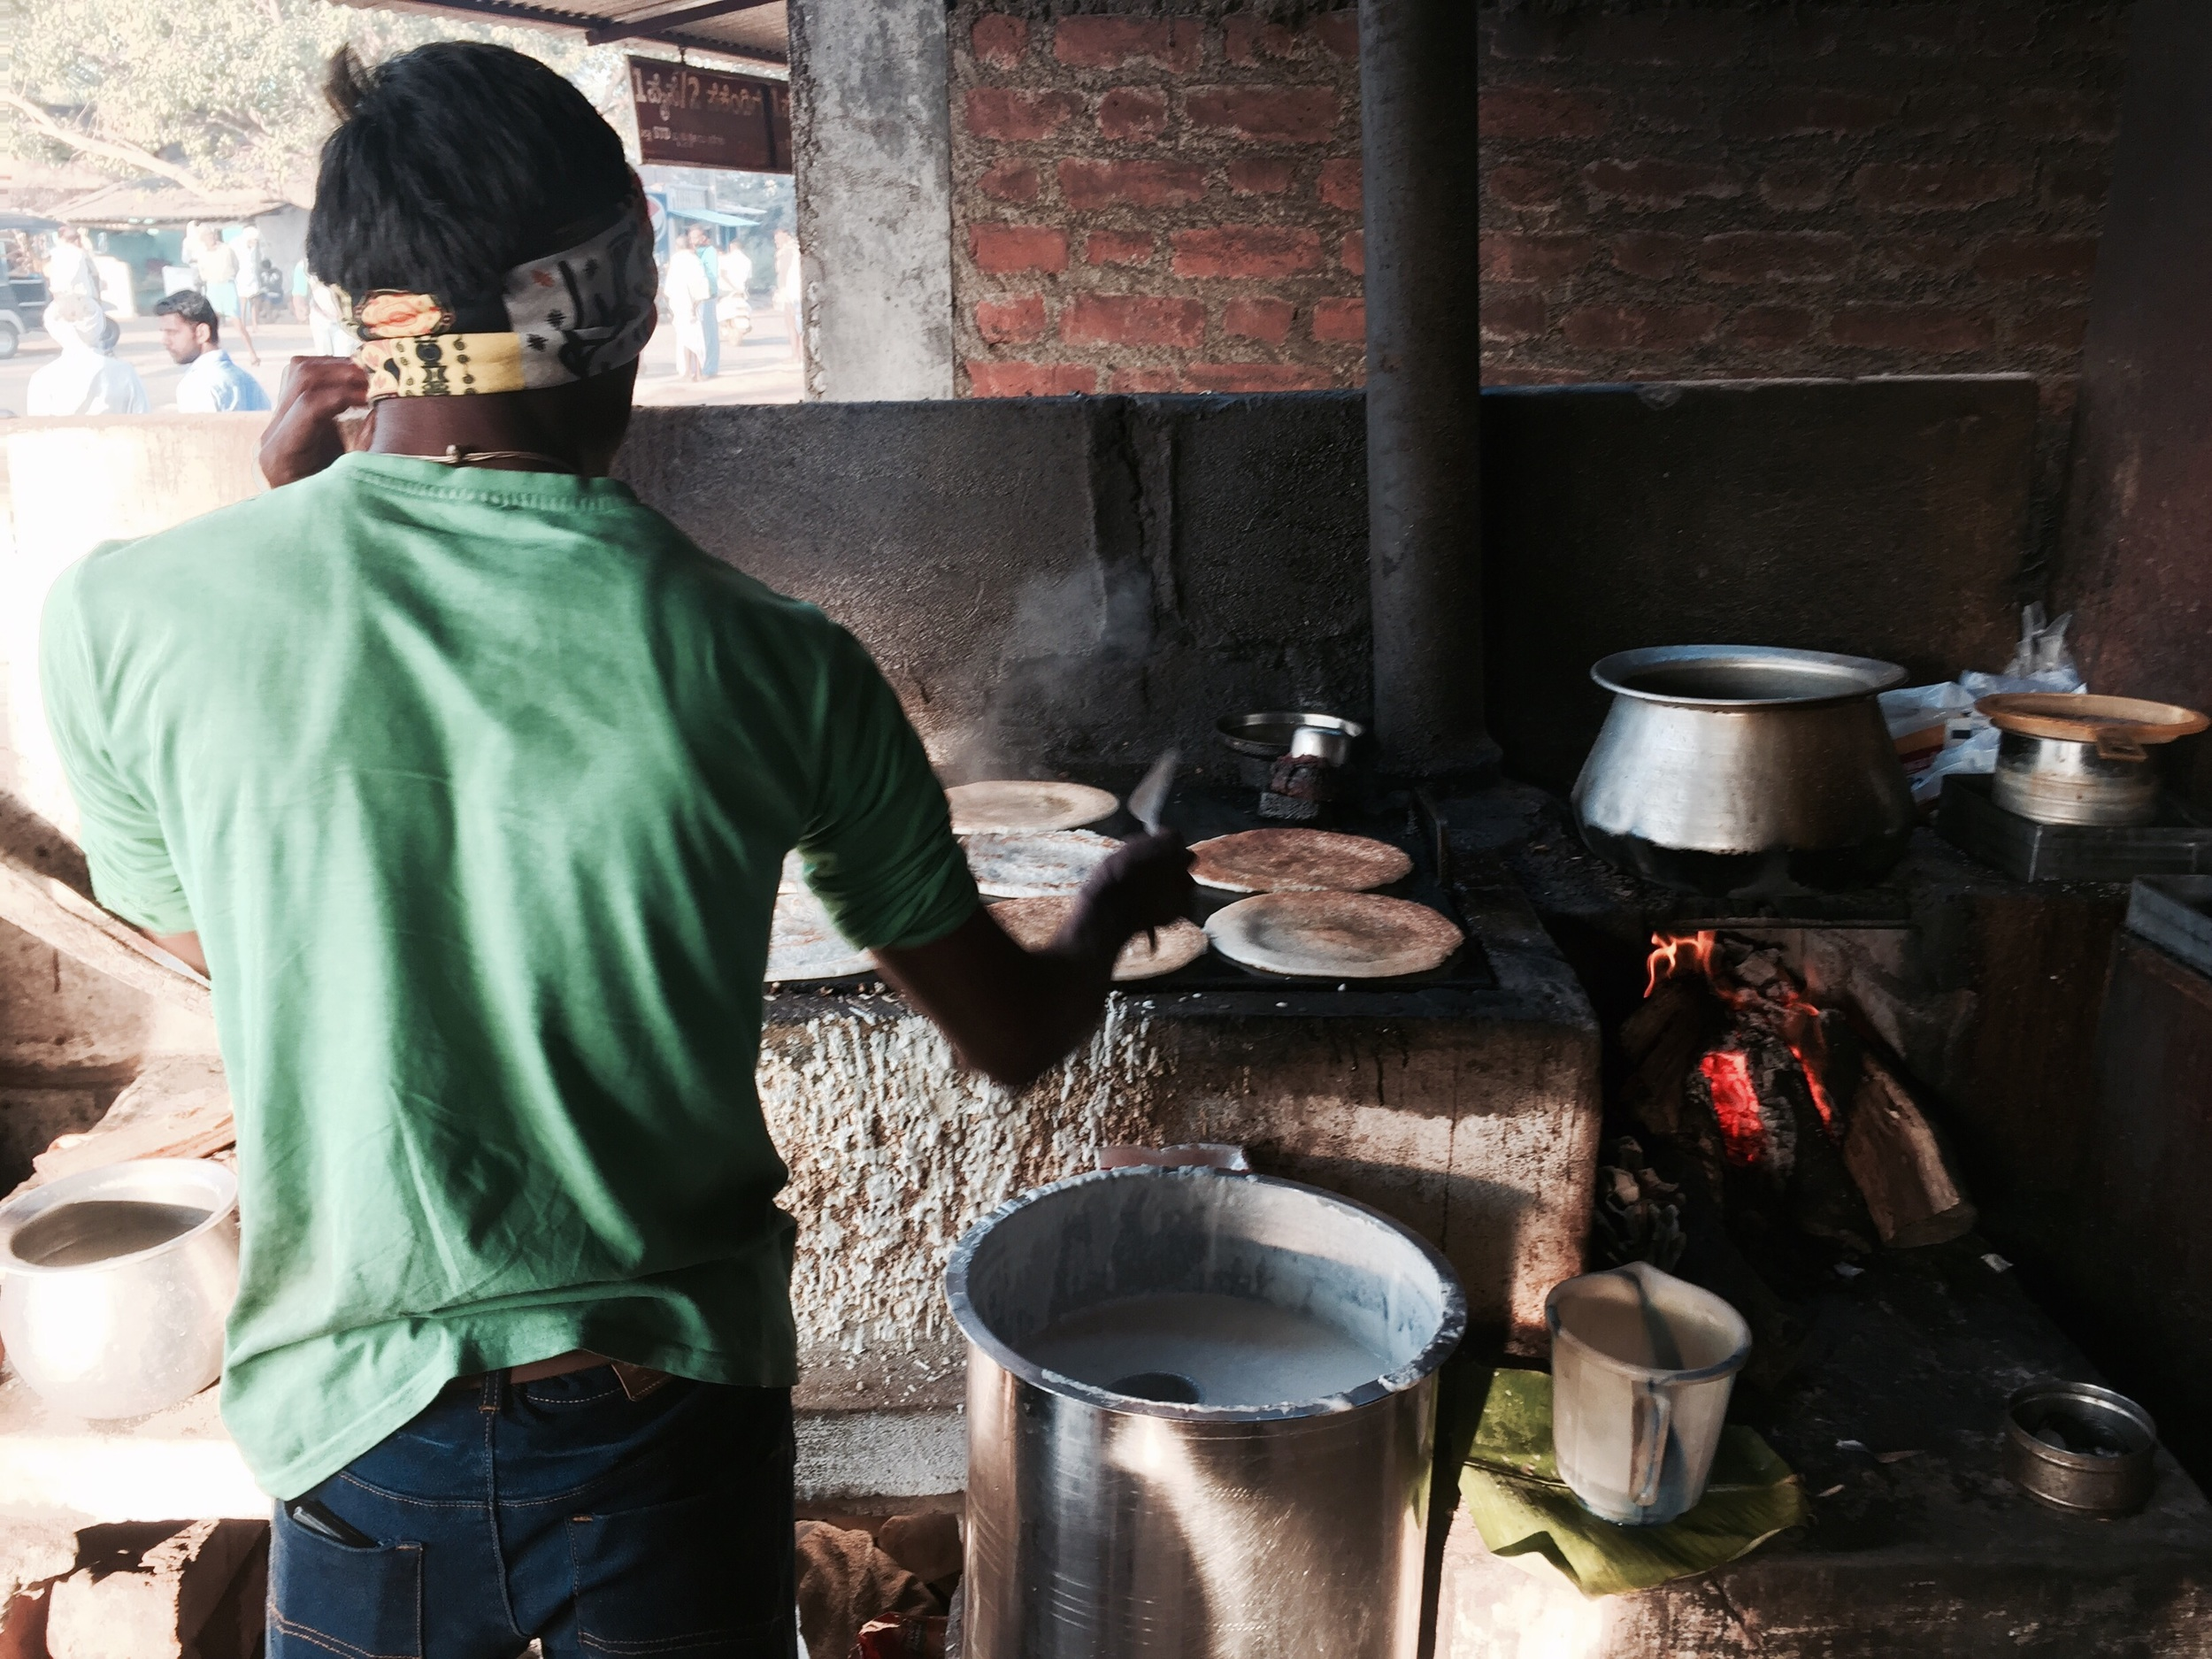 Was lucky this morning and found a place on the side of the road cooking up fresh Dosas.